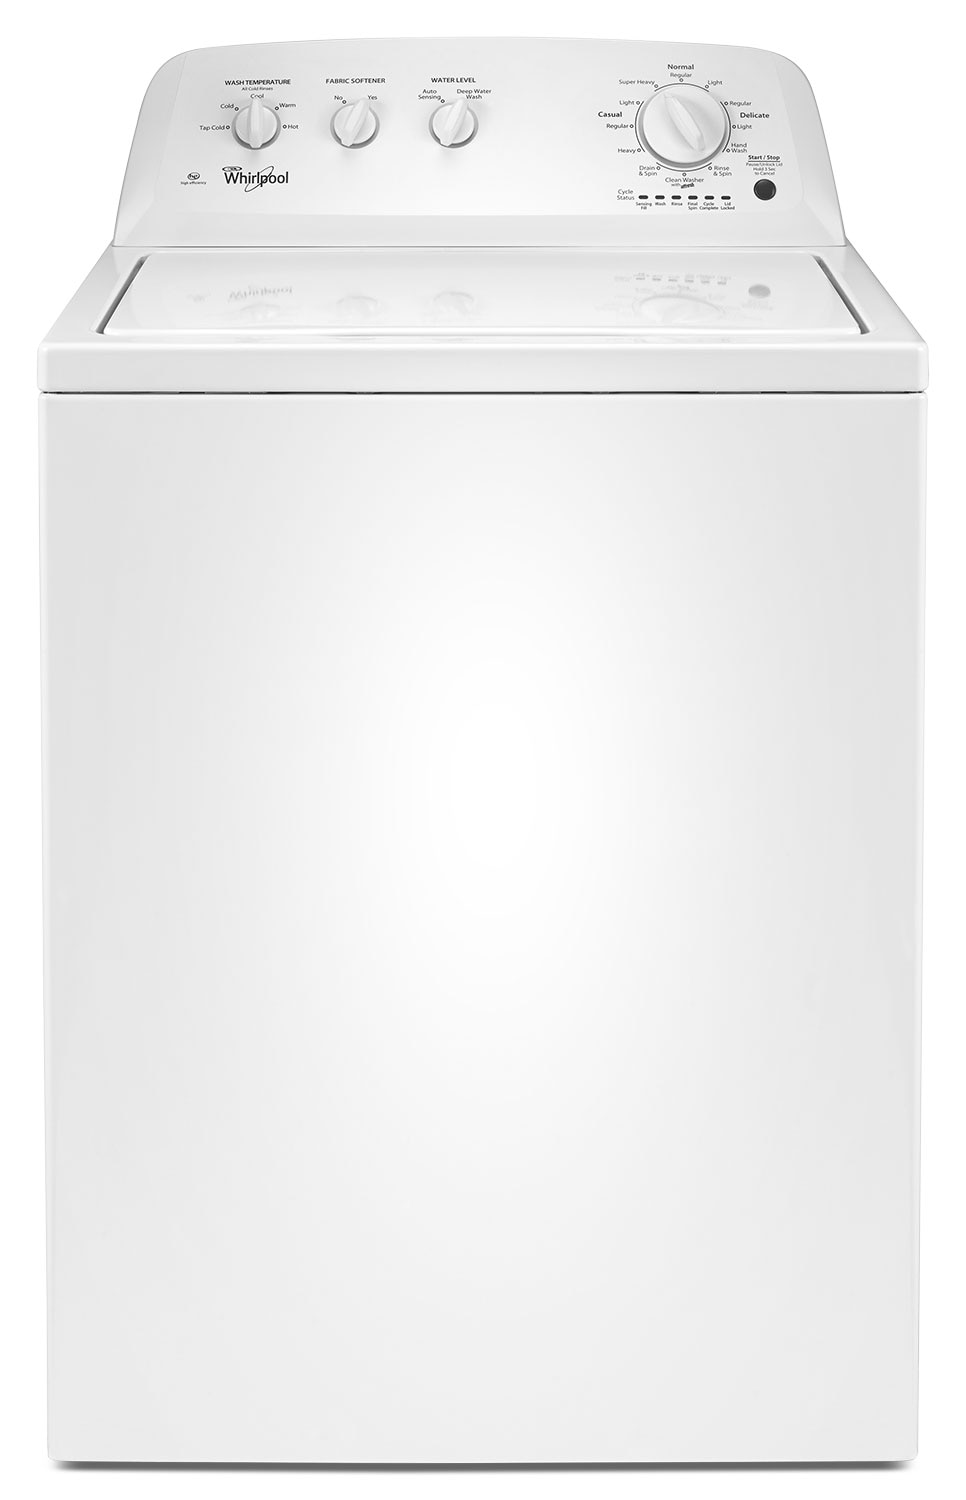 Washers and Dryers - Whirlpool 4.0 Cu. Ft. Top-Load Washer – WTW4616FW